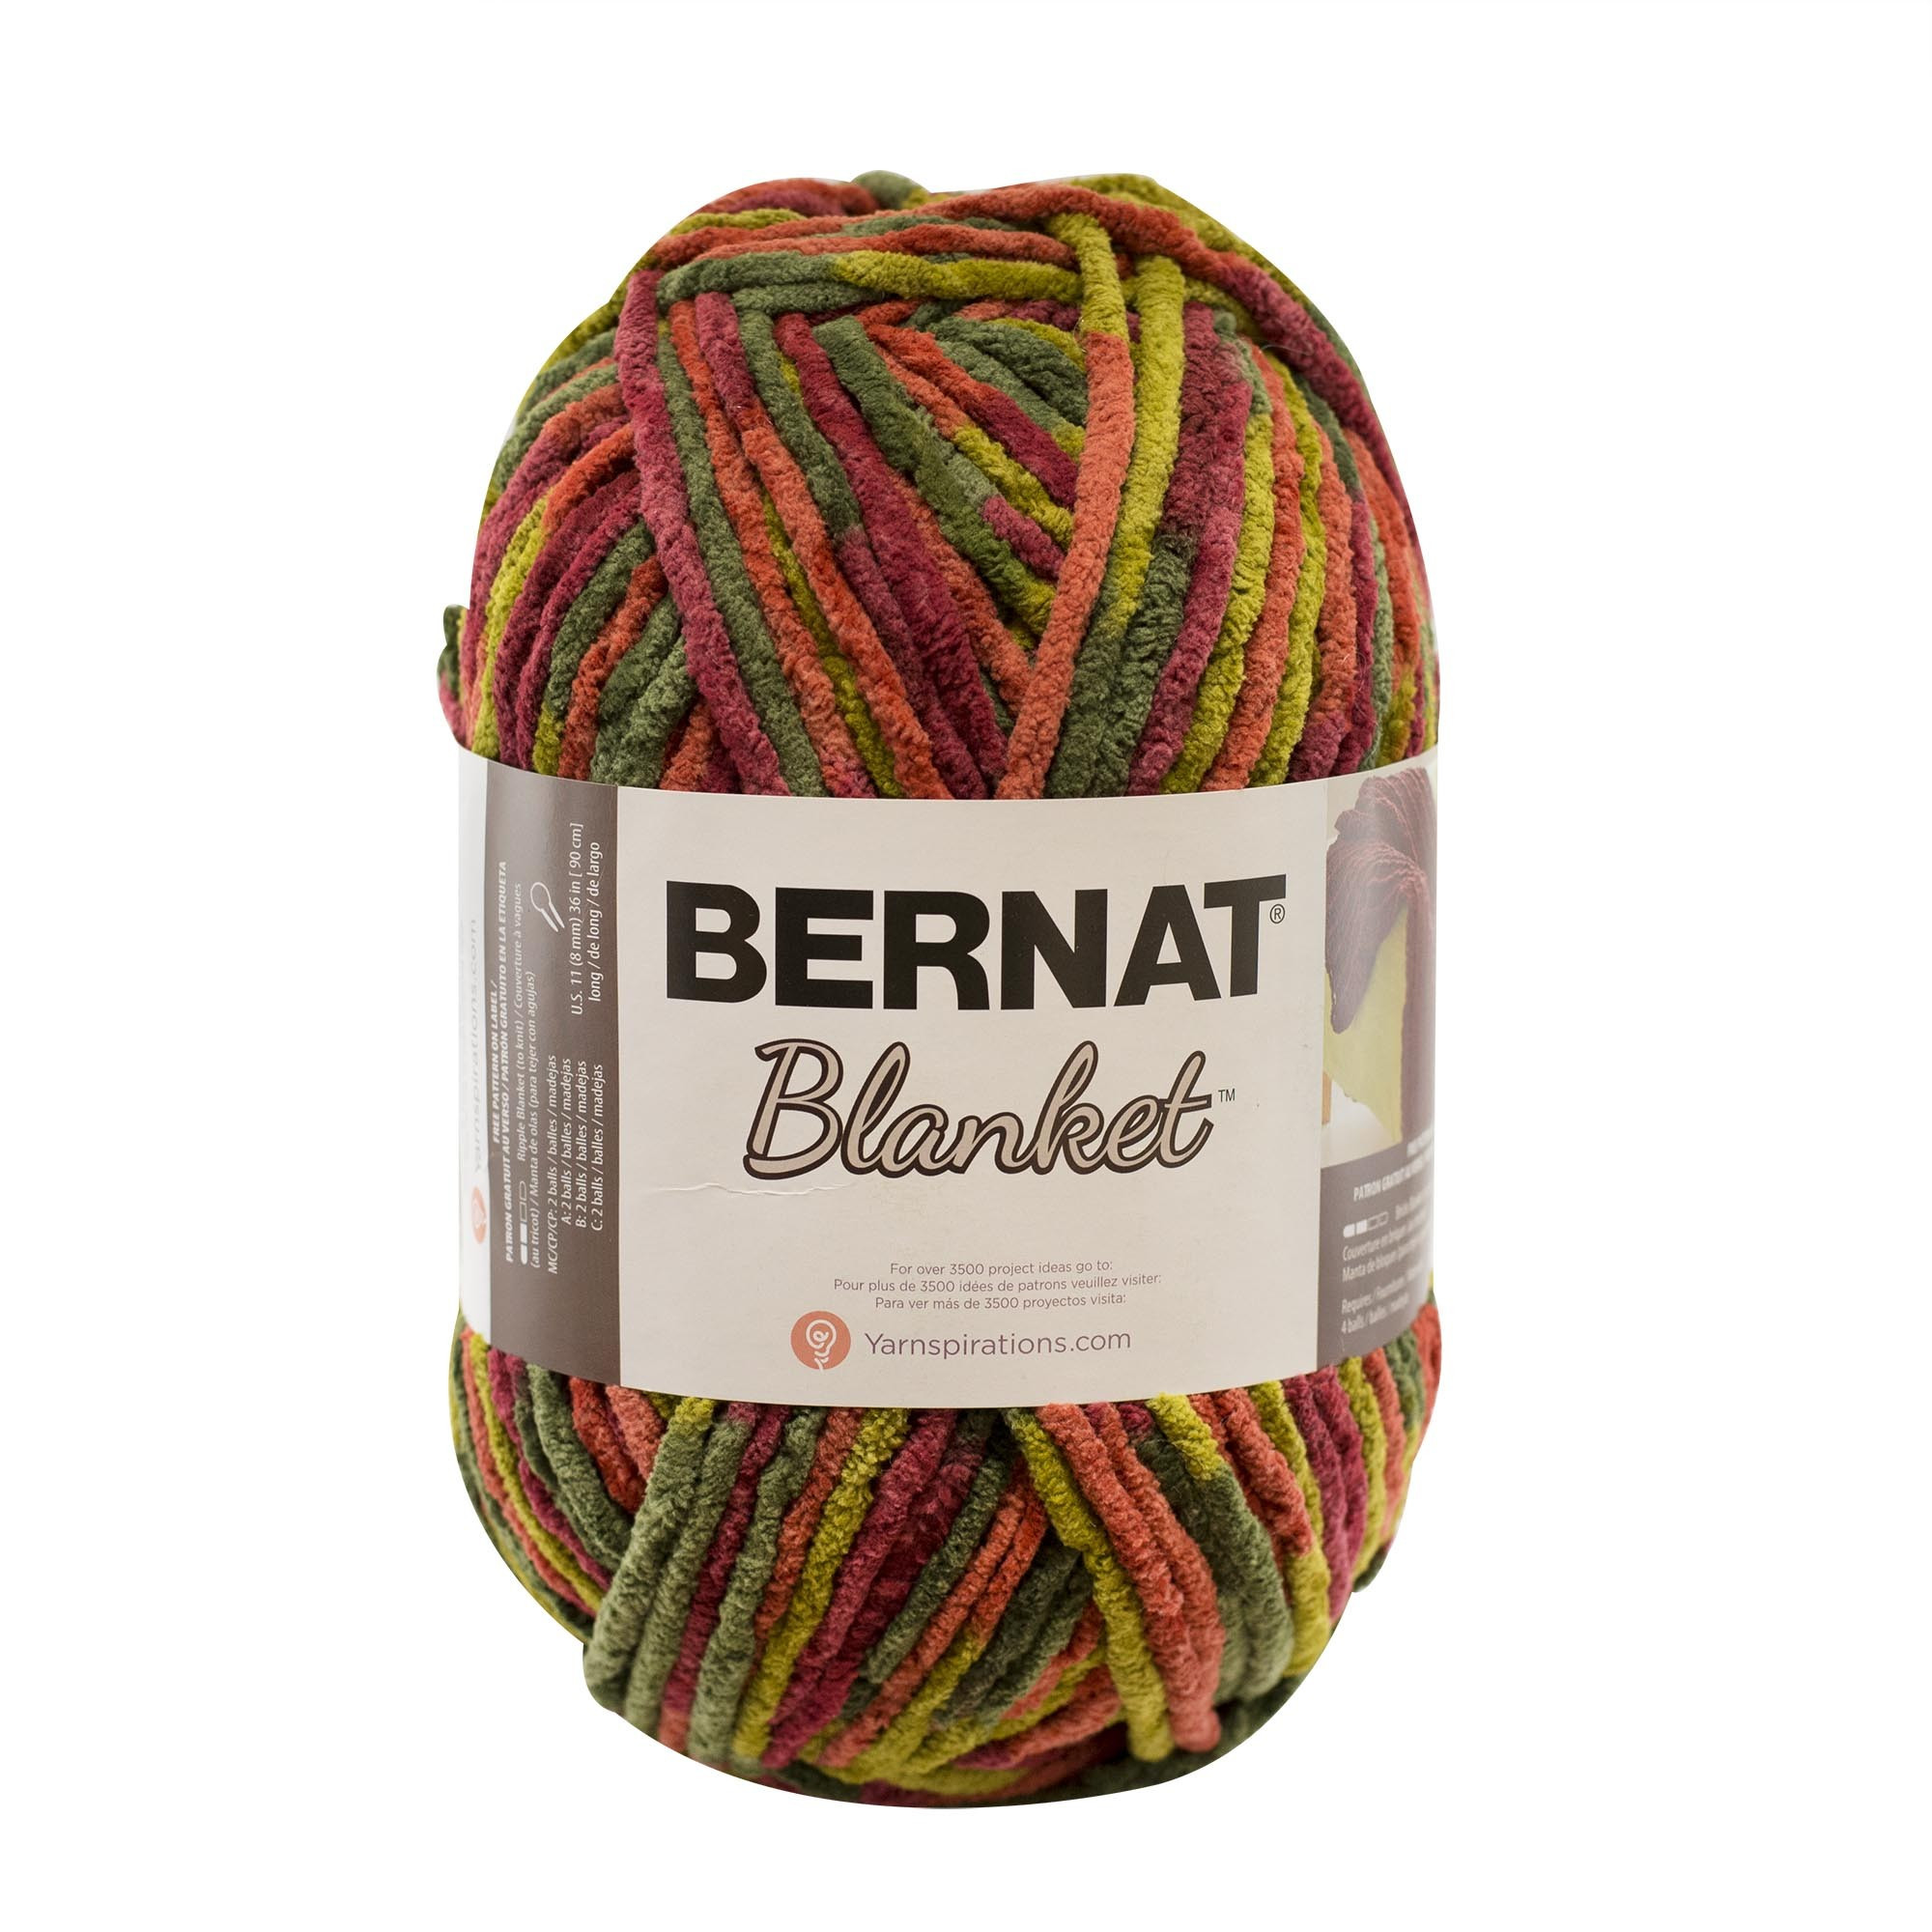 Elegant Bernat Blanket Big Ball Super Chunky Yarn Knitting Yarn Super Chunky Yarn Patterns Of Delightful 42 Ideas Super Chunky Yarn Patterns